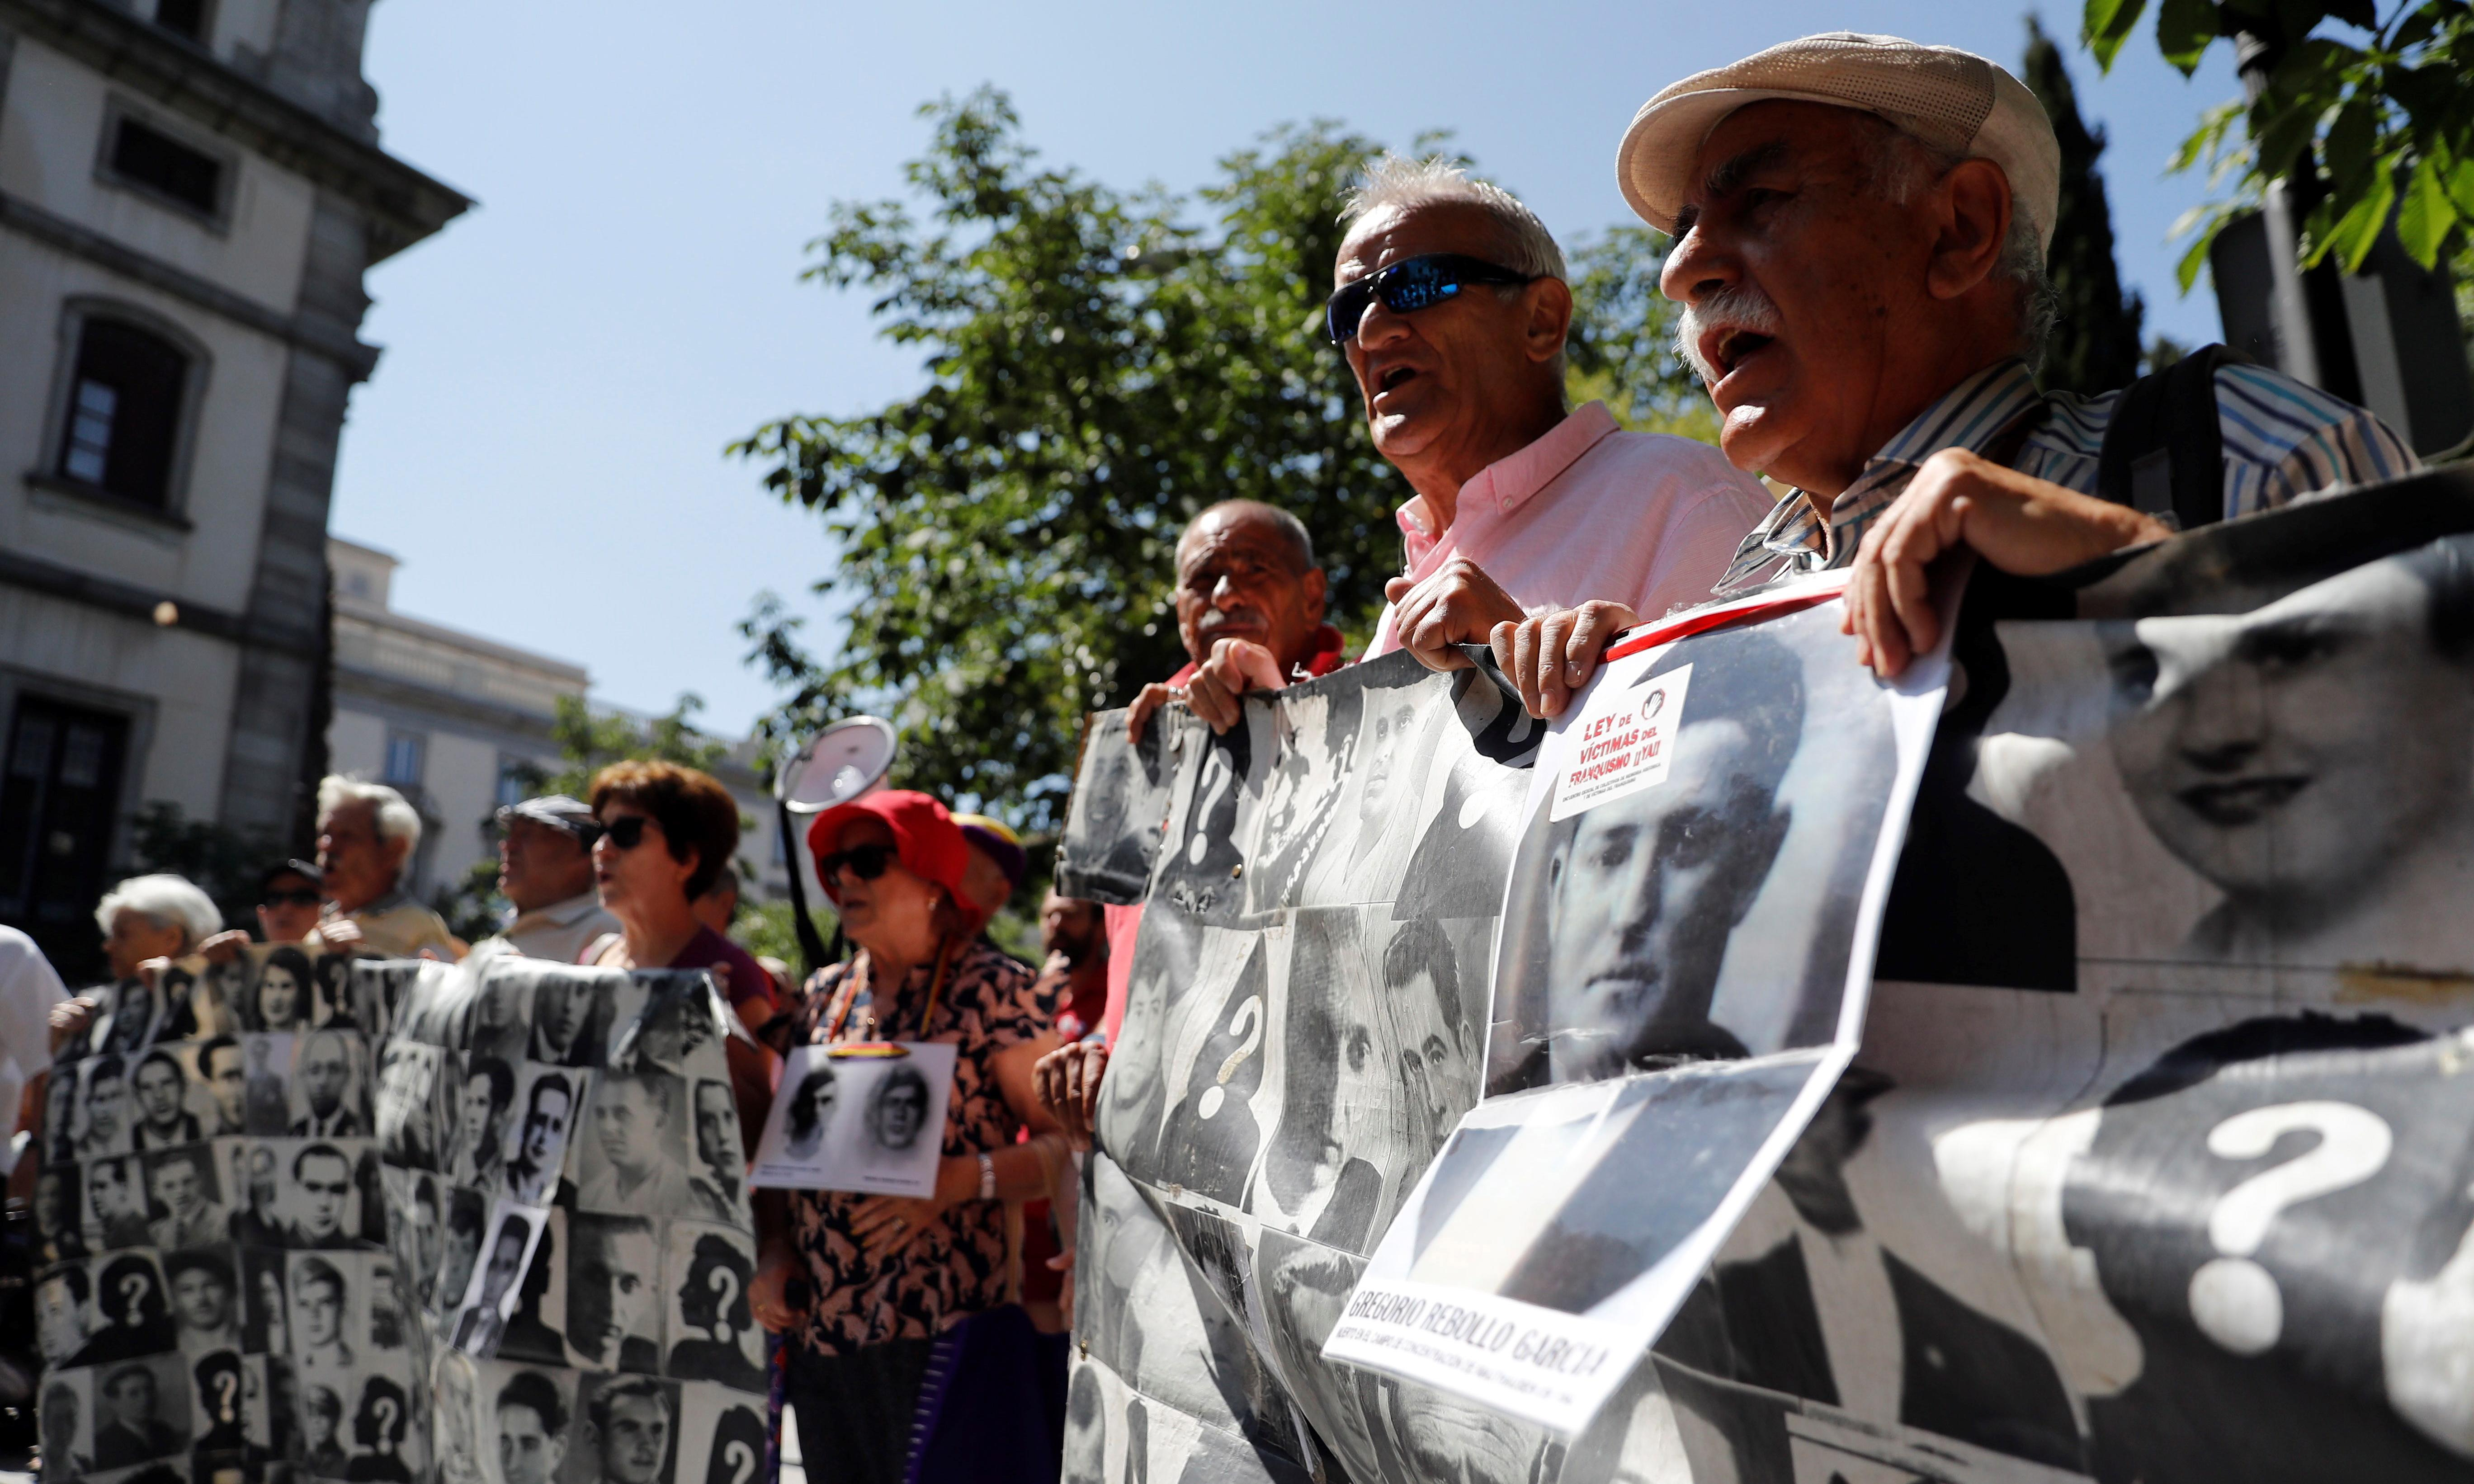 Spain's supreme court to rule on Franco exhumation